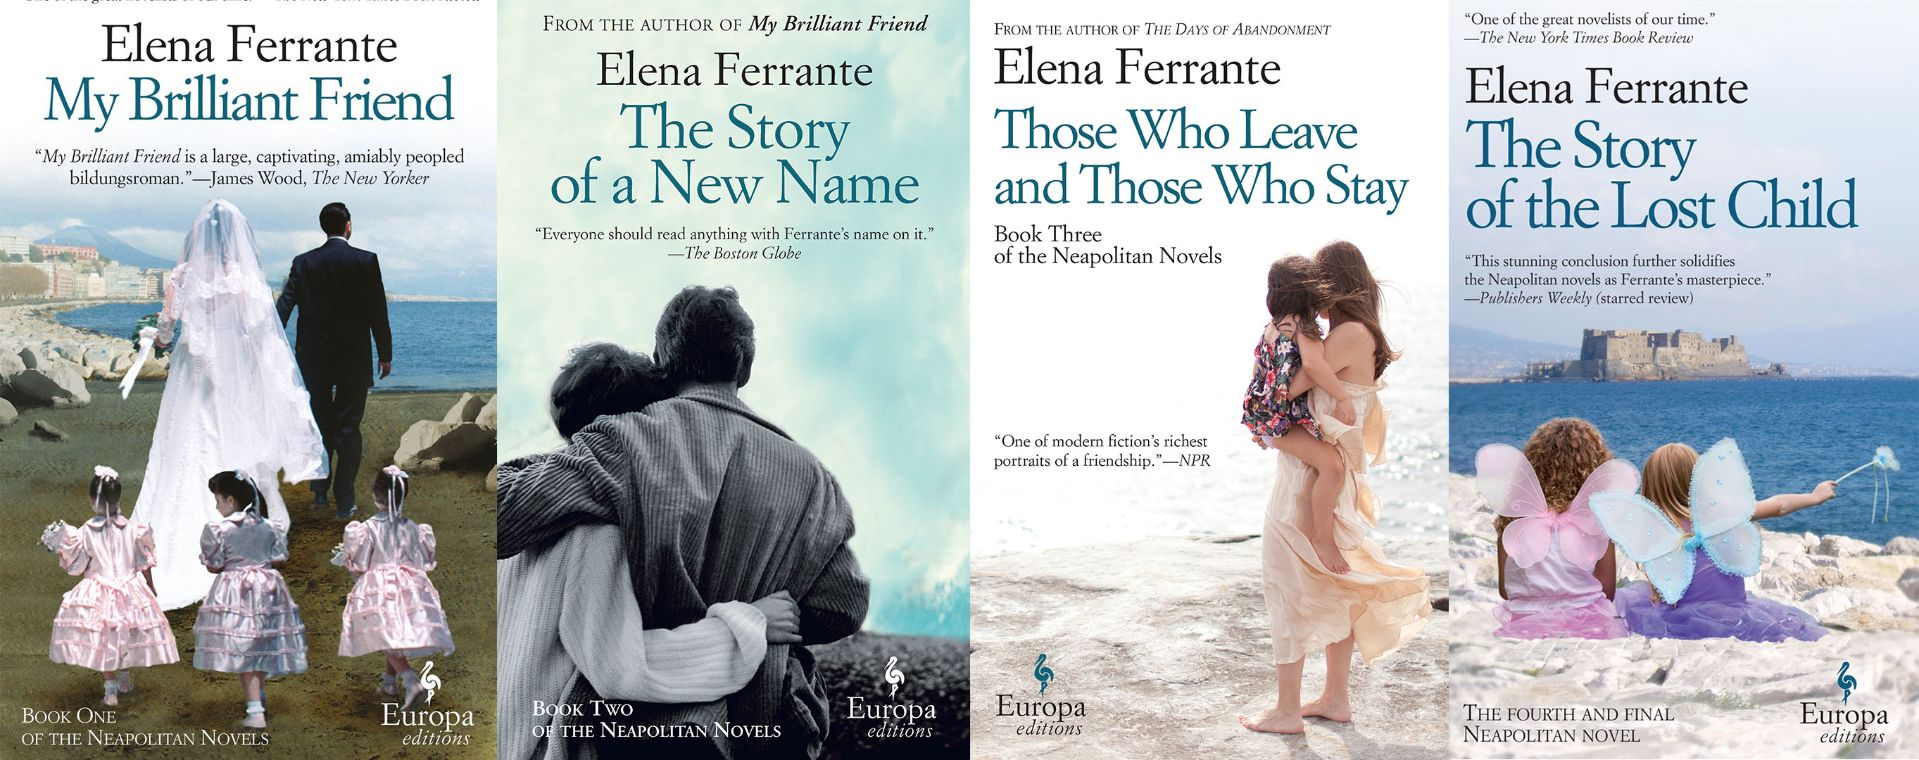 The Neapolitan Novels by Elena Ferrante got the most mentions in this year's list, with five.